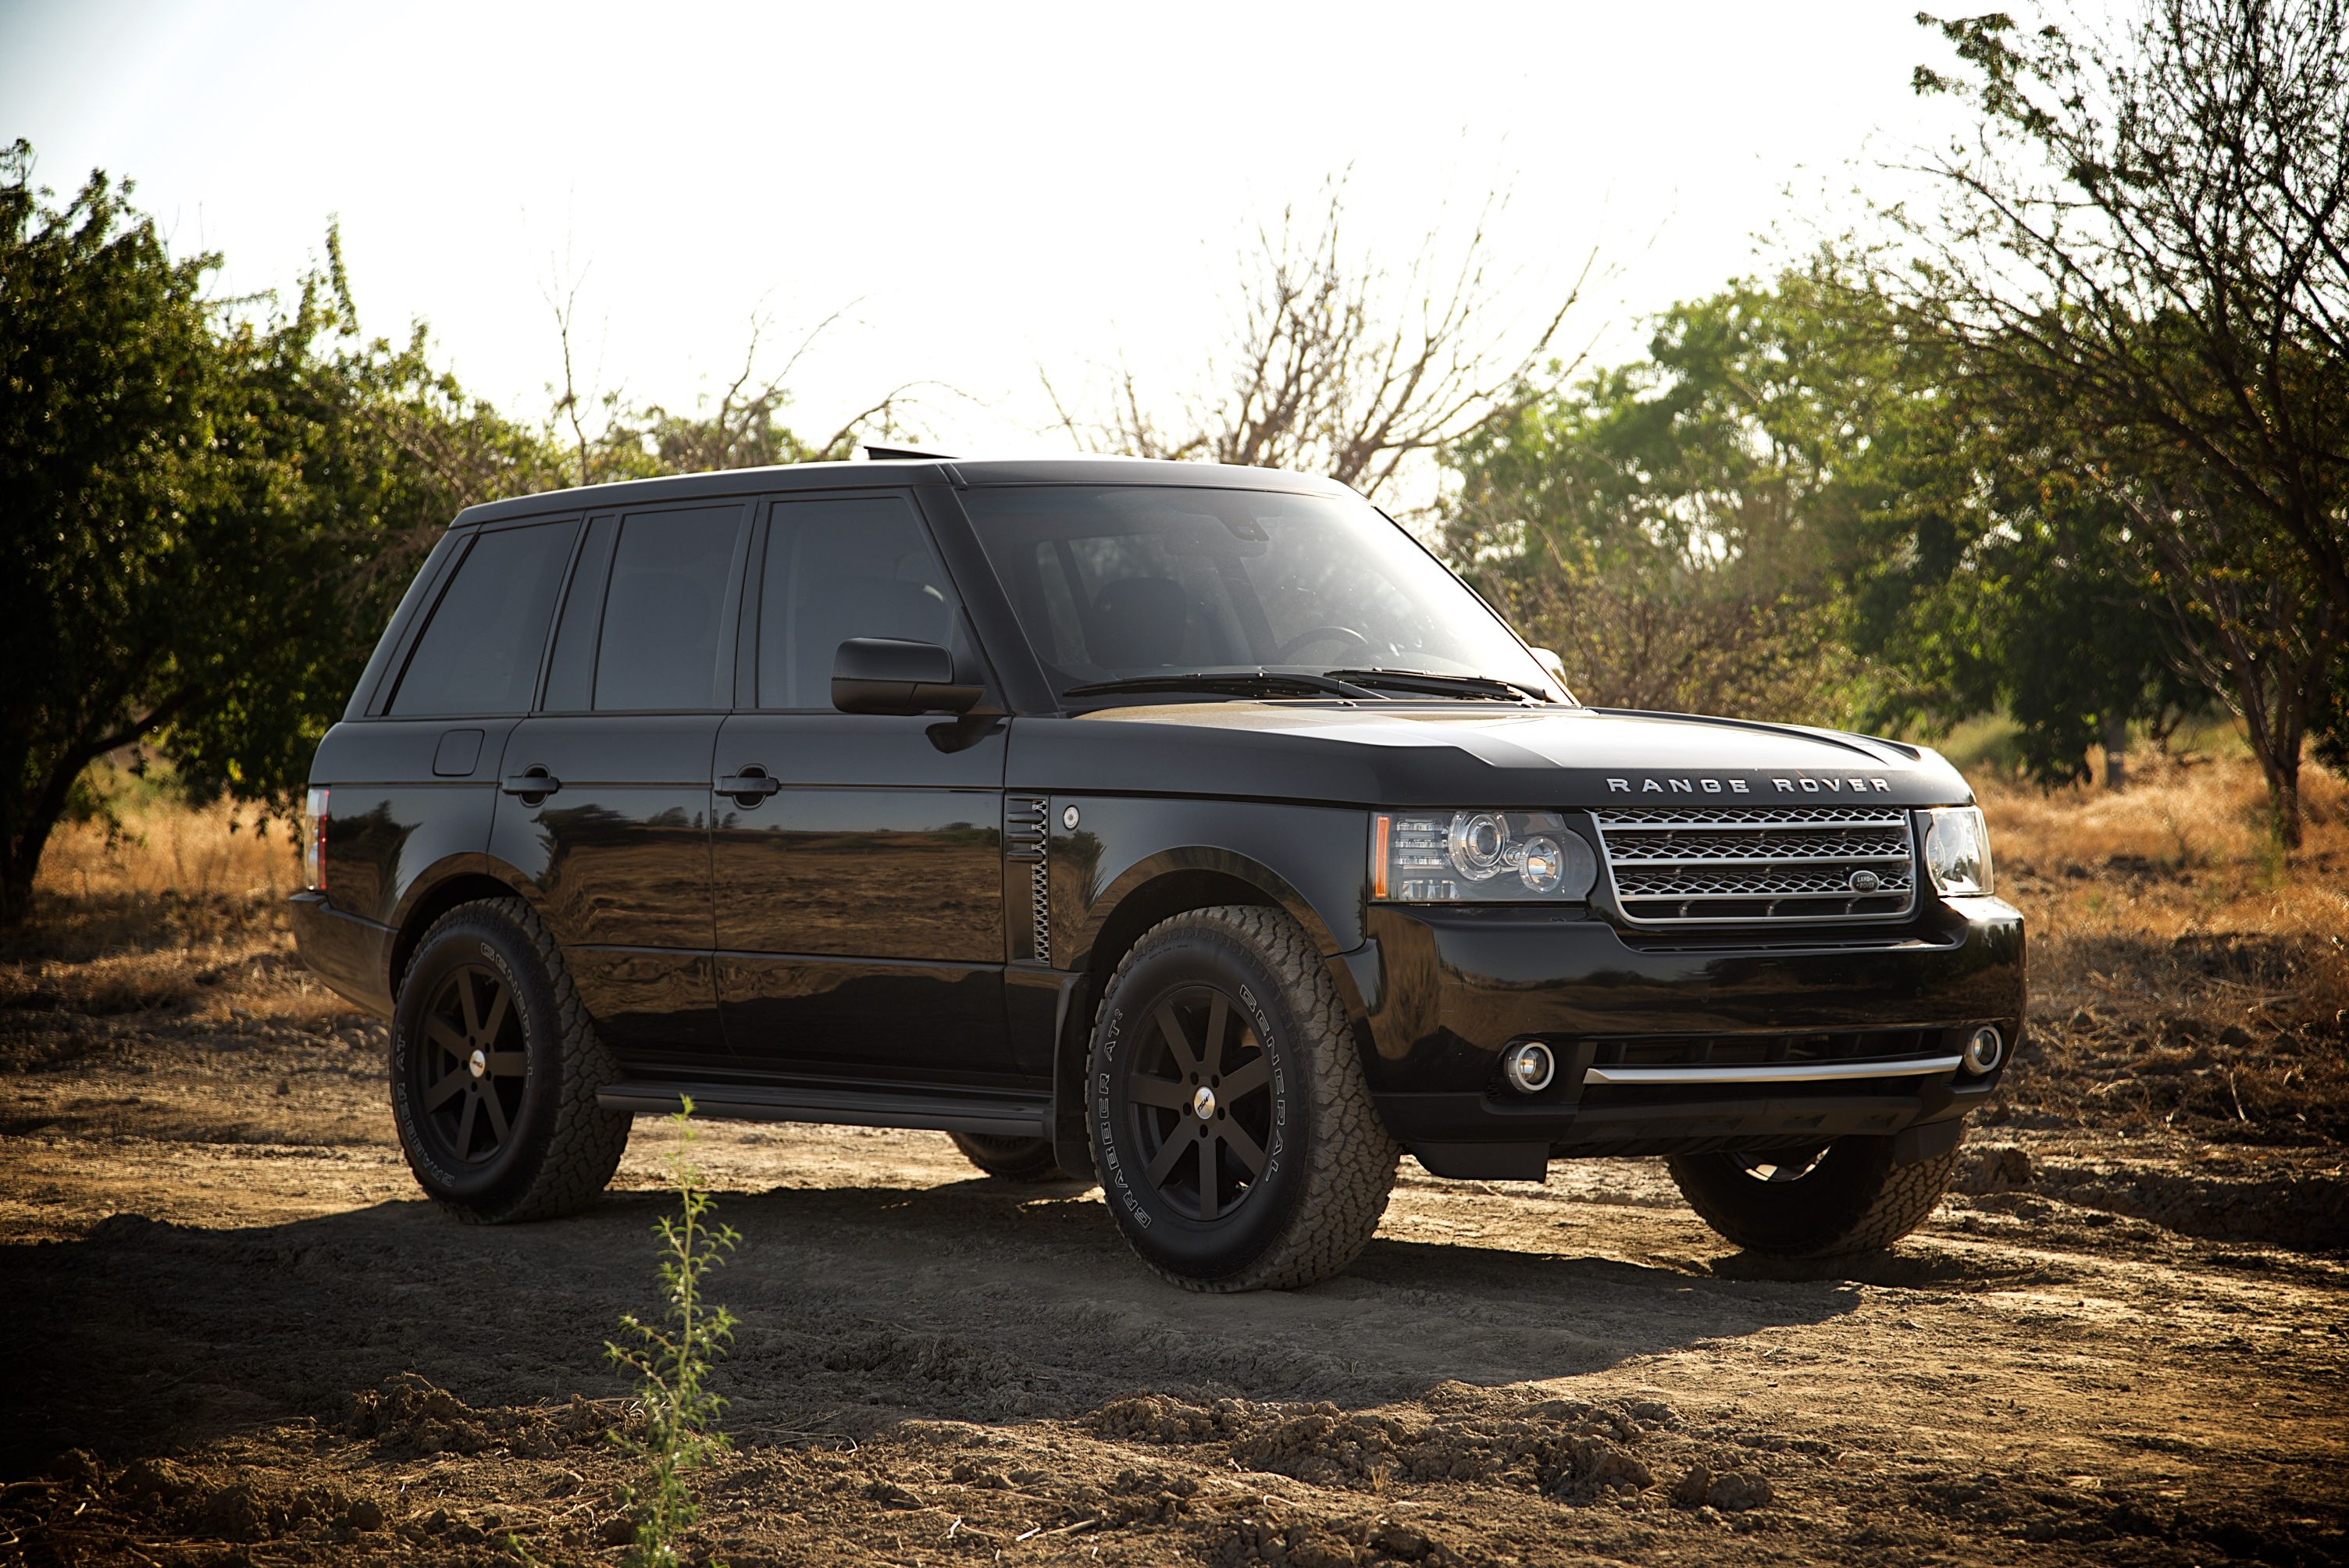 Range Rover Lifted >> 2010 L322 Facelift Full Size Range Rover Hse 2 Lift On 33 Tires